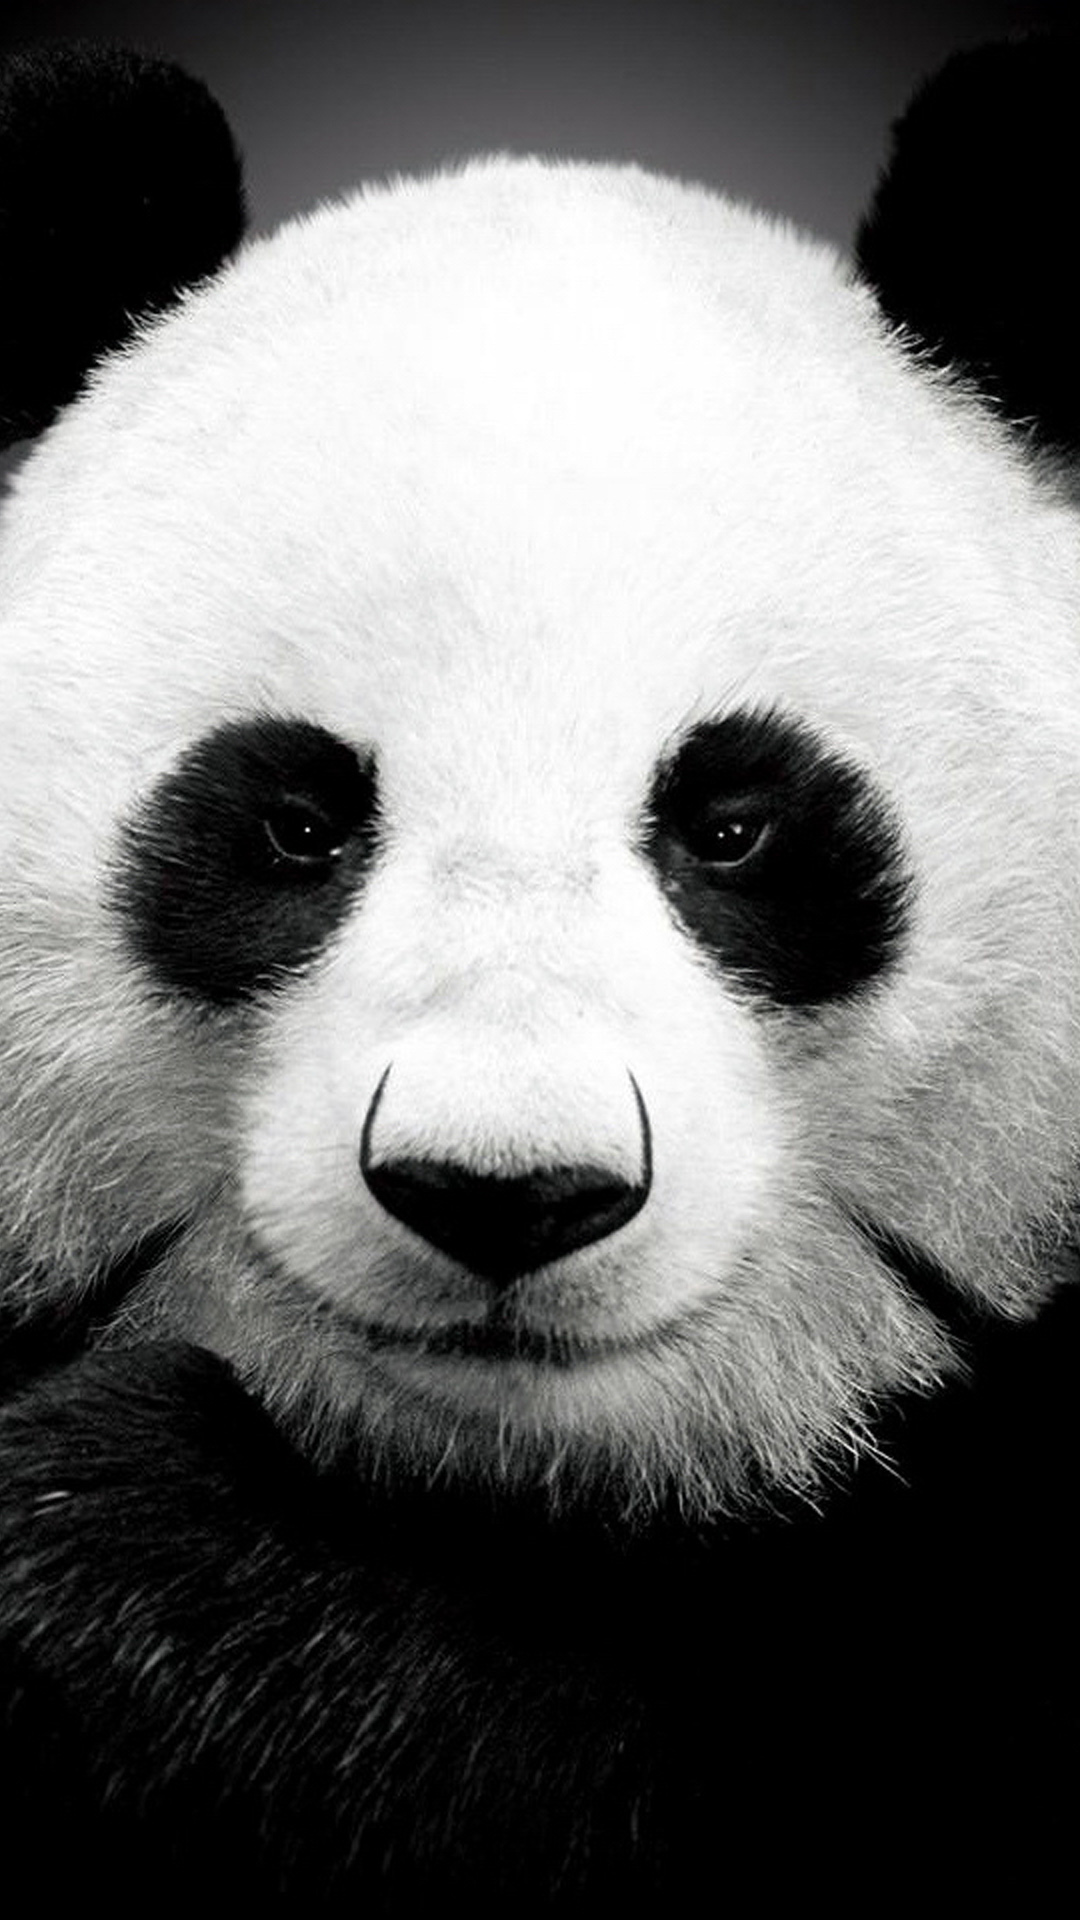 Panda Bear Best Htc One Wallpapers Free And Easy To Download